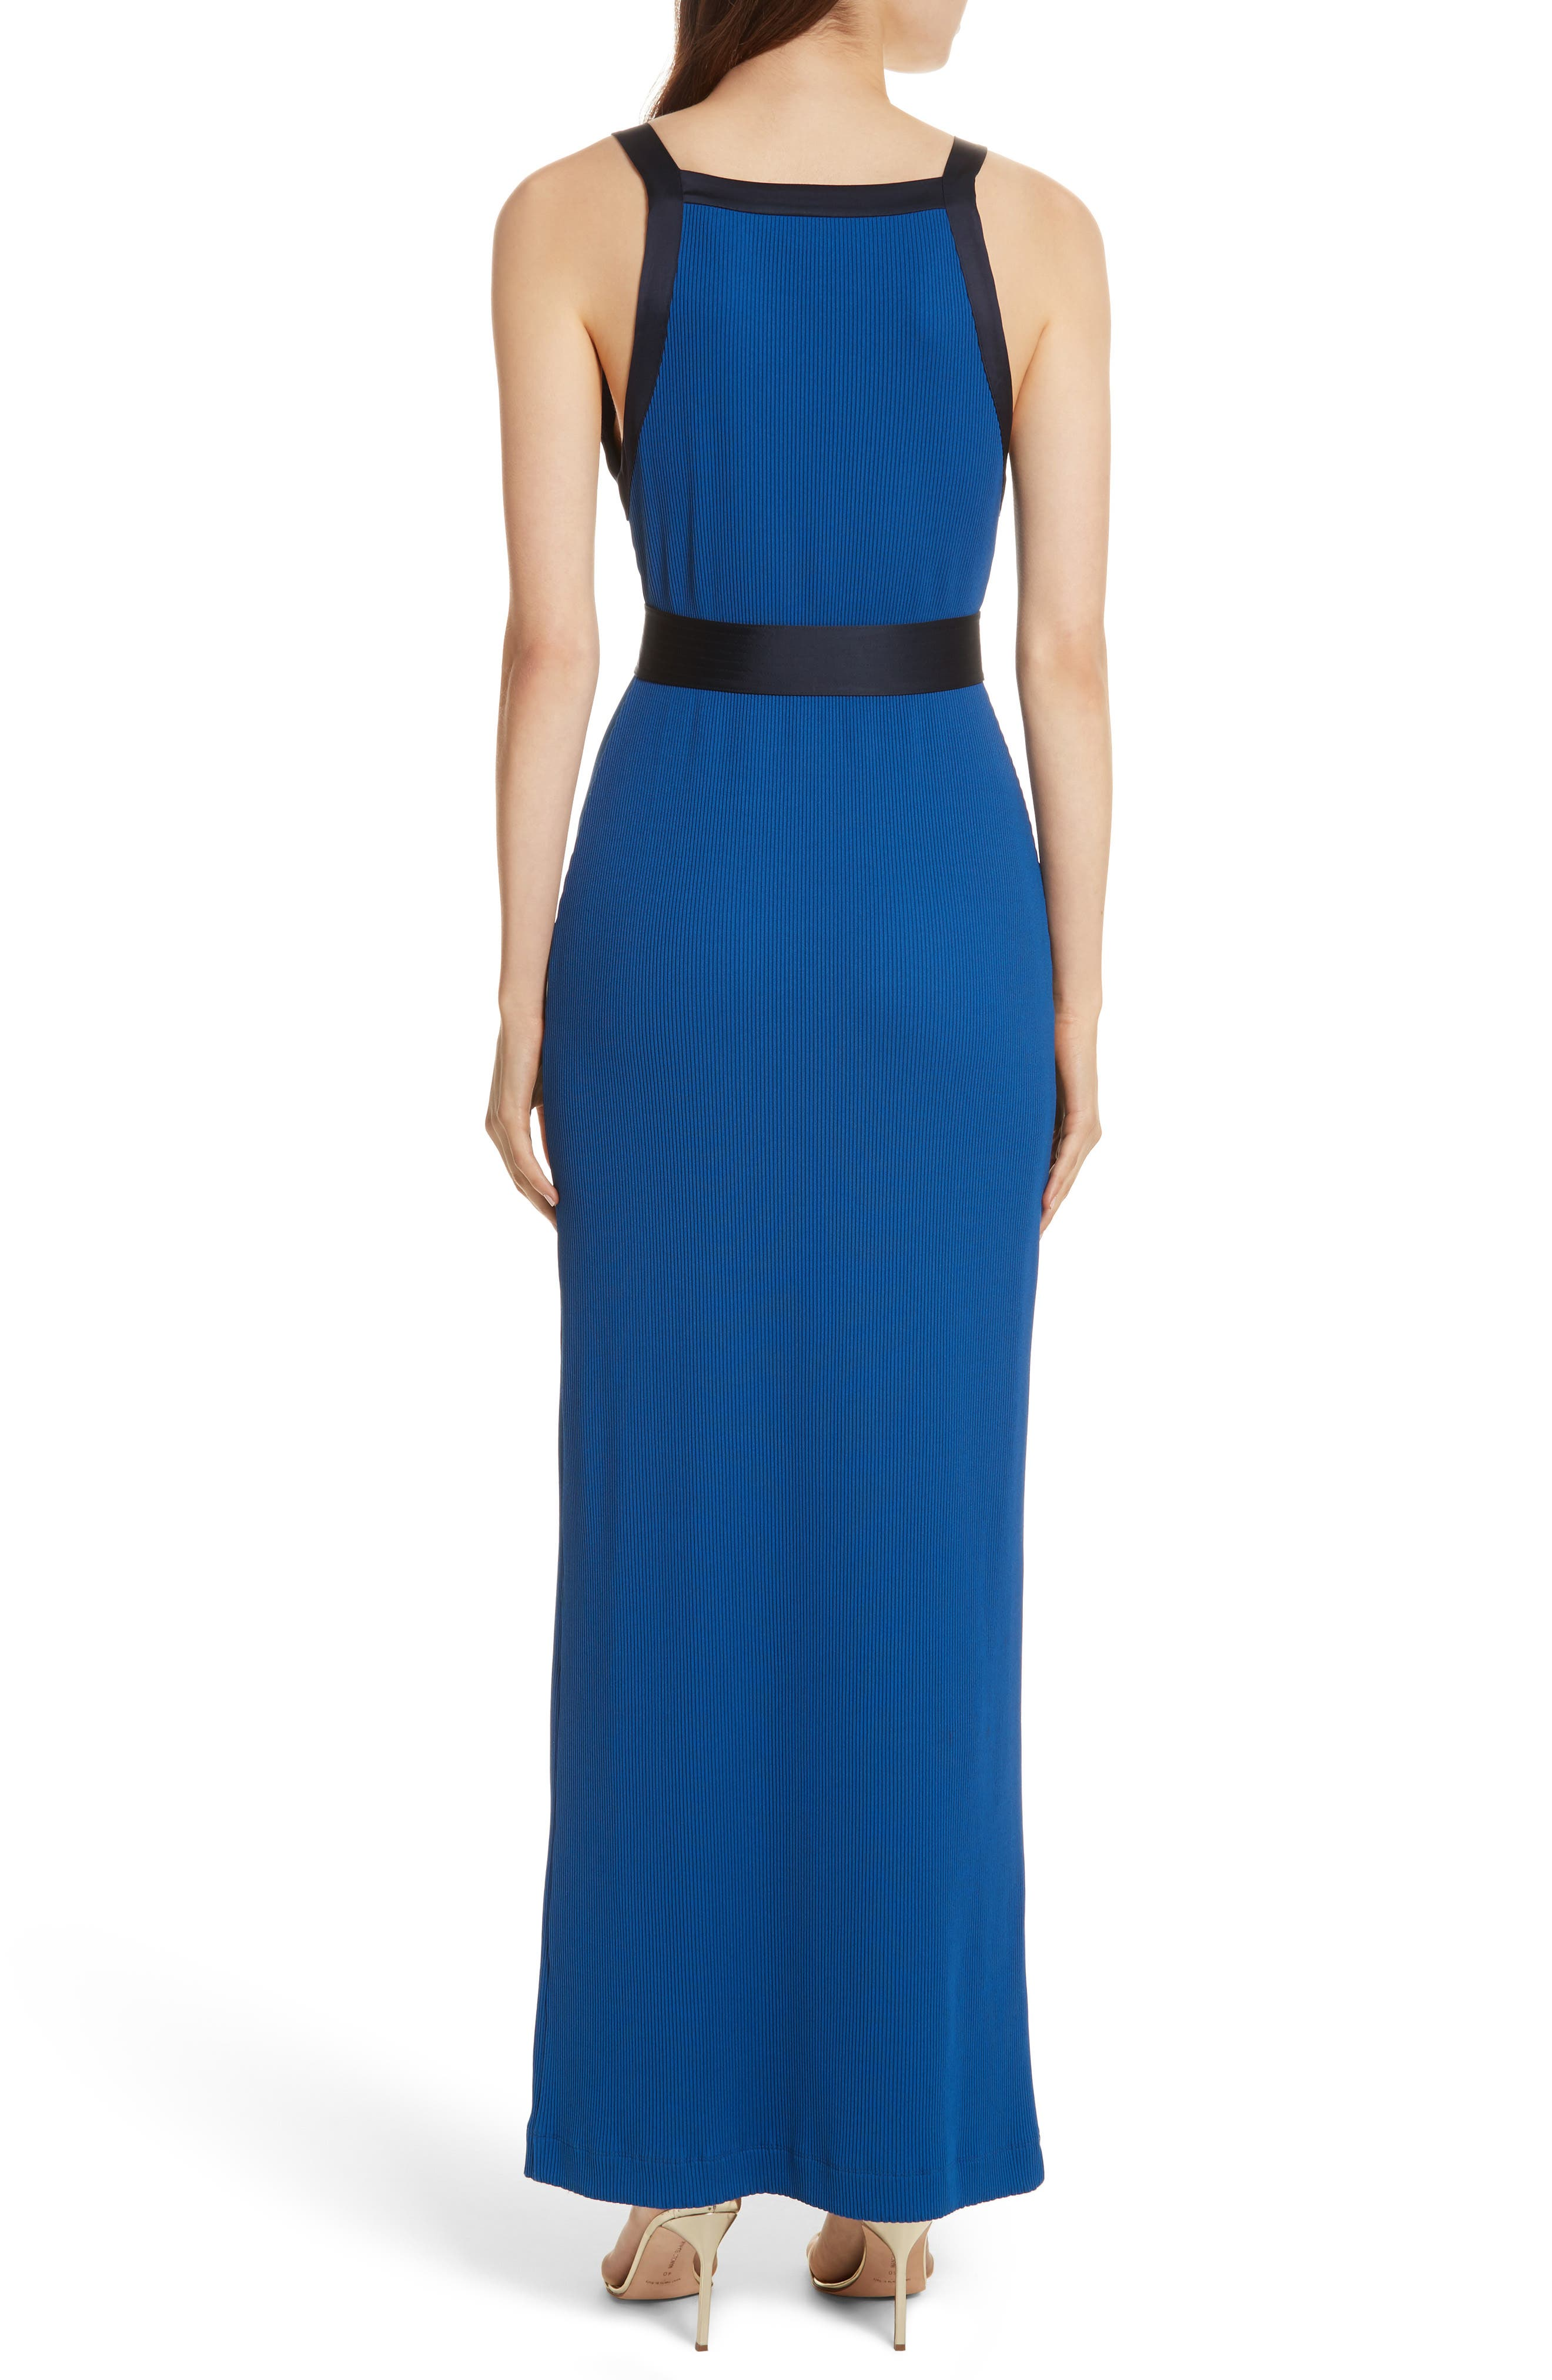 Diane von Furstenberg Ribbed Jersey Maxi Dress,                             Alternate thumbnail 2, color,                             Cove/ Alexander Navy